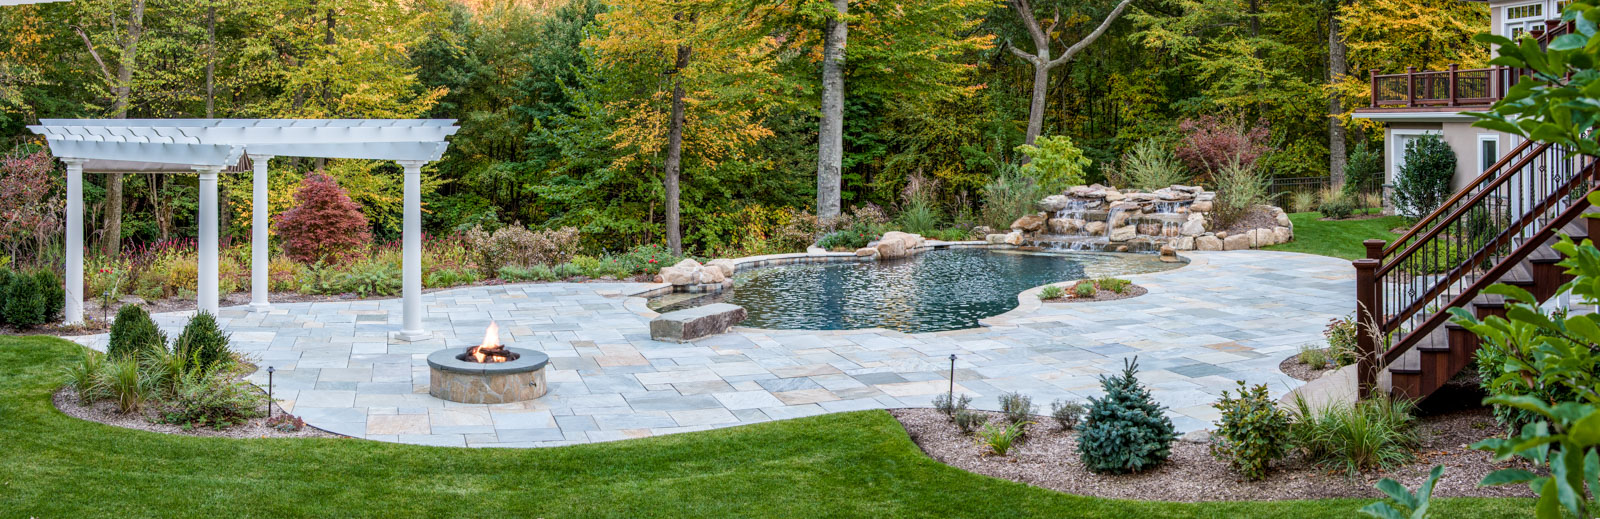 Mountain Lakes Pool And Patio Clc Landscape Design